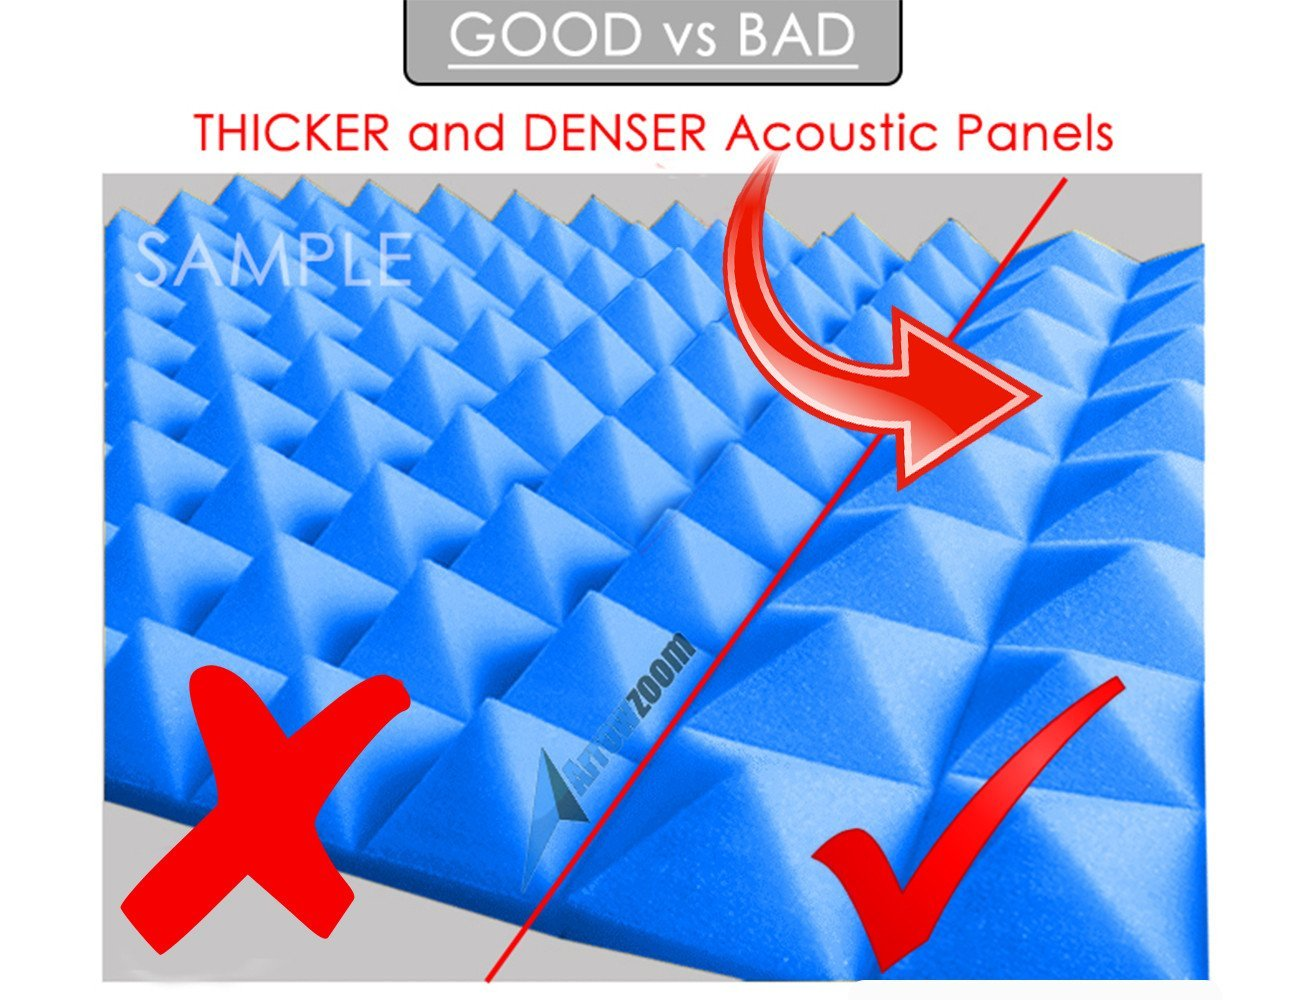 Arrowzoom New 1 Pack of 2 Meter (78.7 X 59 X 1.2 Inches) Convoluted Foam Soundproofing Insulation Egg Crate Roll Acoustic Wall Foam Padding Studio Foam Sheet Tiles AZ1132 (BLACK) by Arrowzoom Egg Crate Acoustic Foam (Image #7)